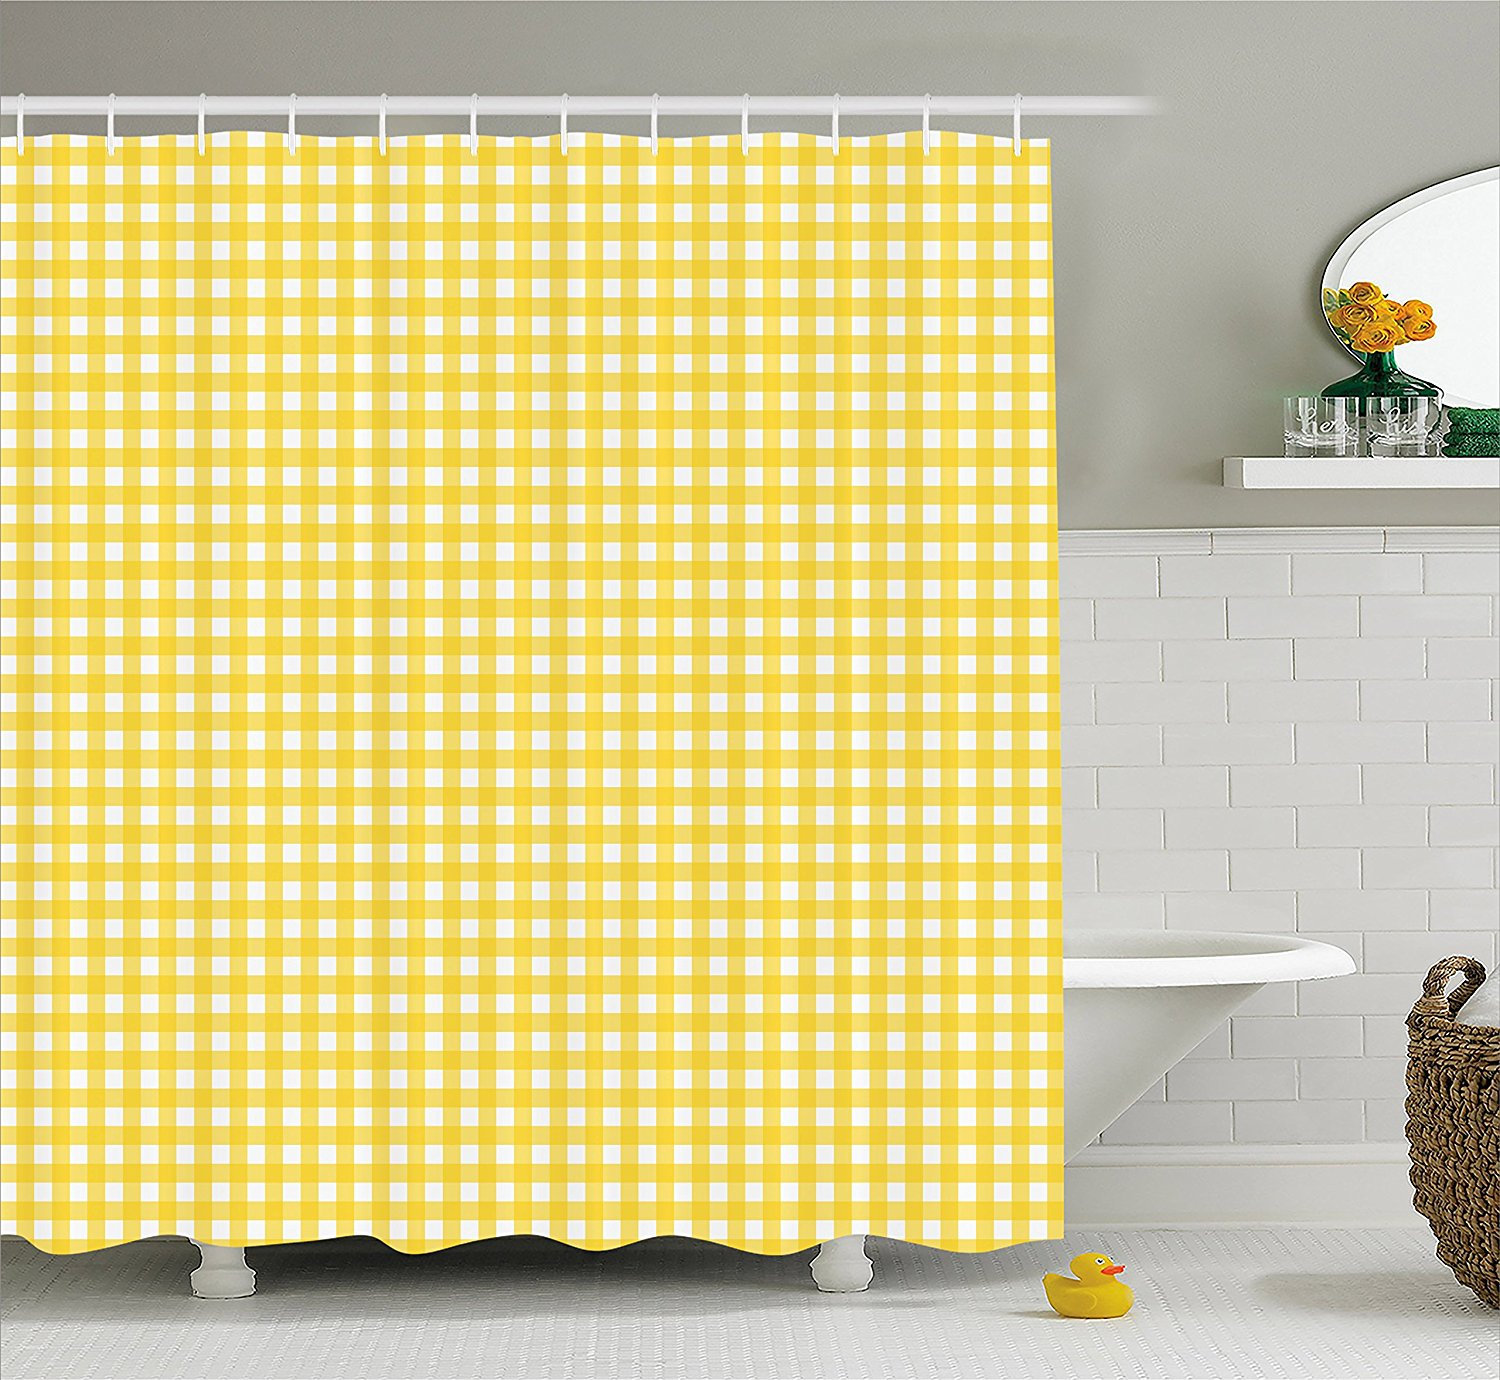 images curtains window curtain size madras checkered shower black large